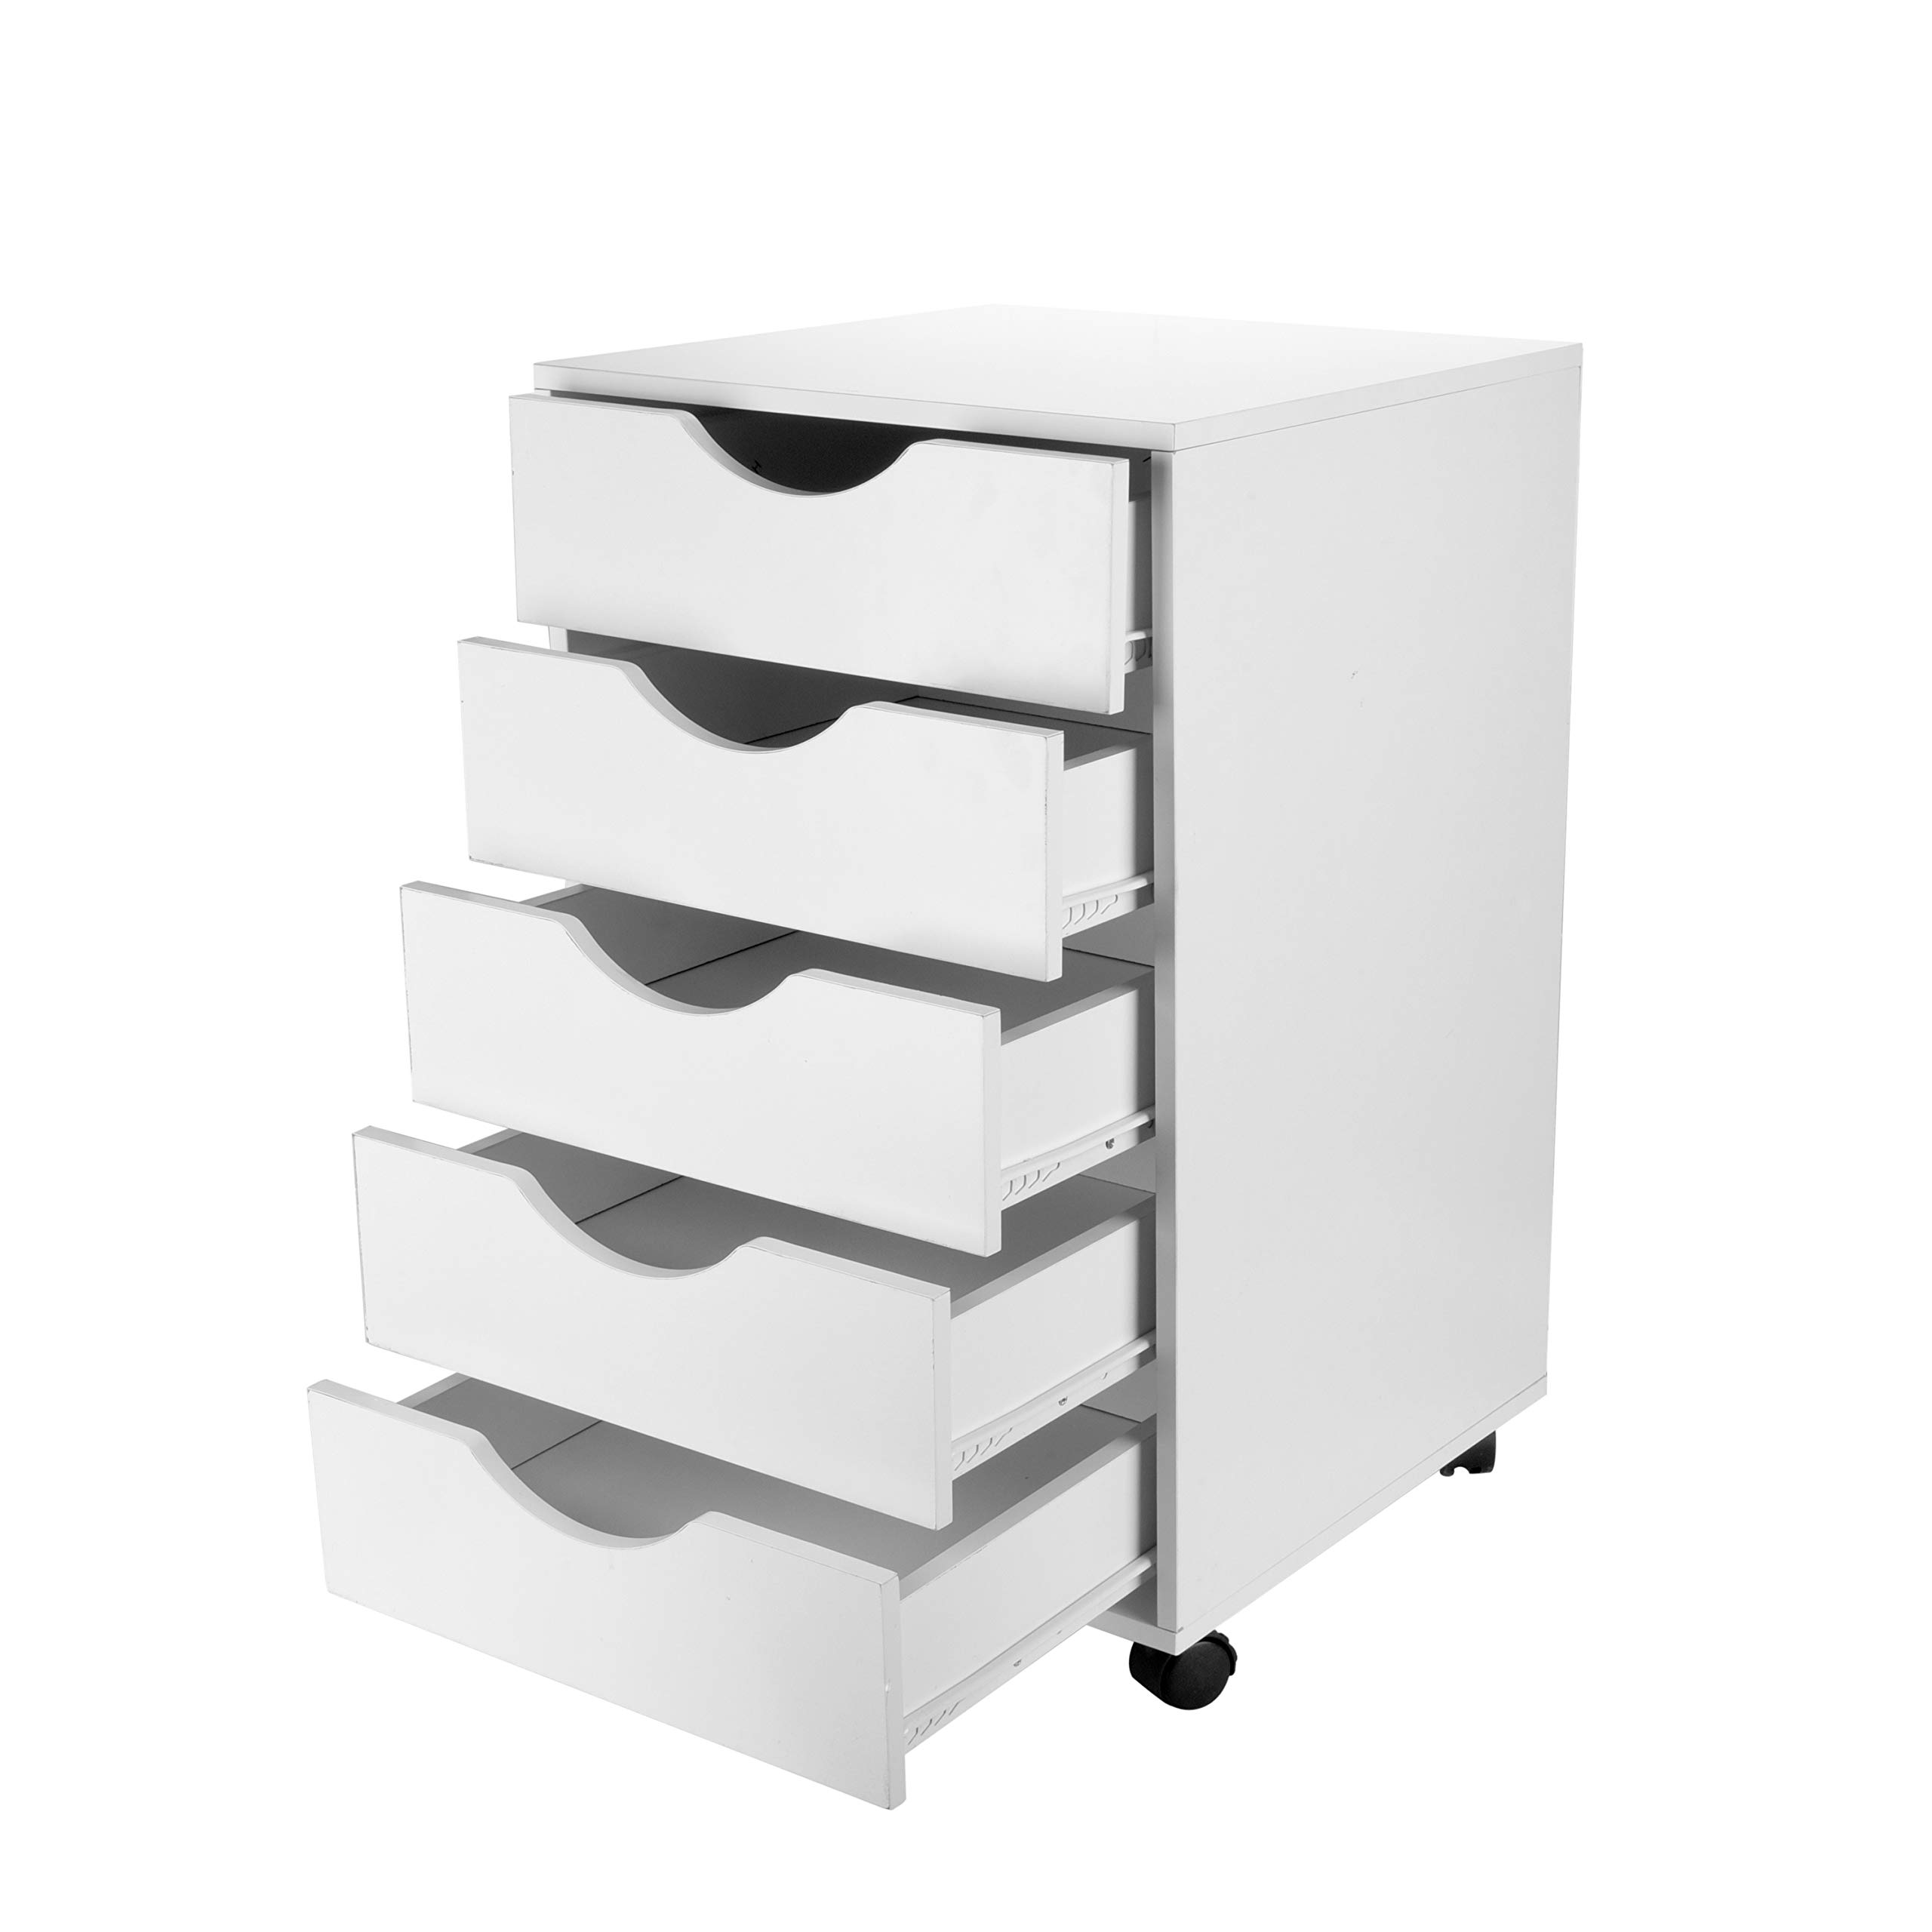 eMerit 5 Drawer Wood File Cabinet Roll Cart Drawer for Office Organization White by EMERIT (Image #3)